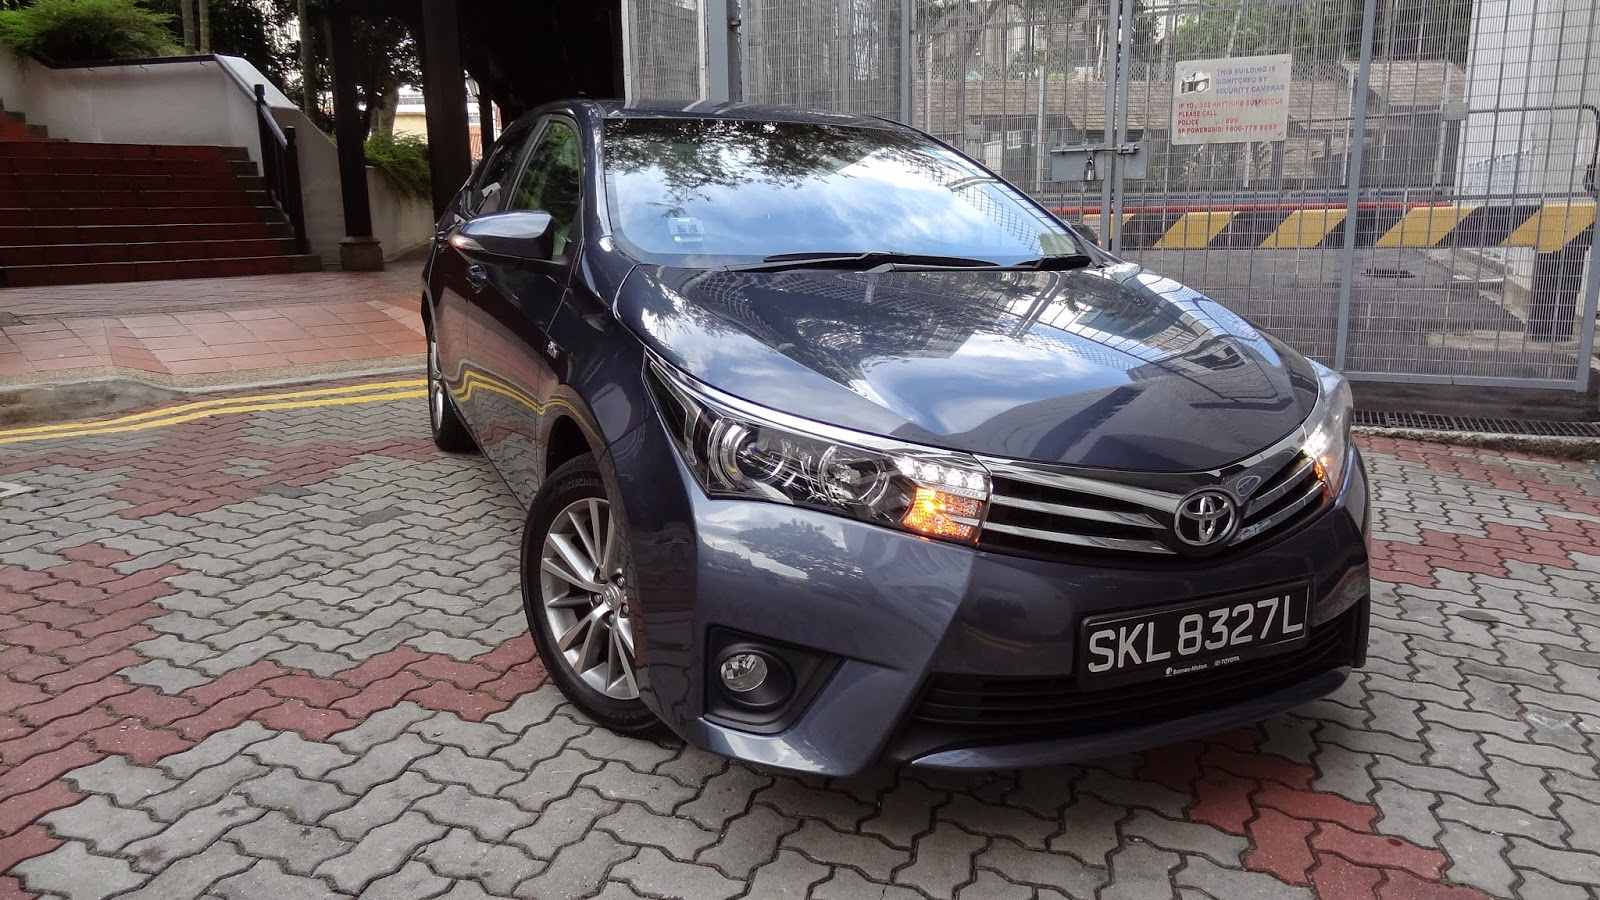 Shaun owyeong the all new toyota corolla altis a legend redefined shaun owyeong the all new toyota corolla altis a legend redefined car review voltagebd Gallery